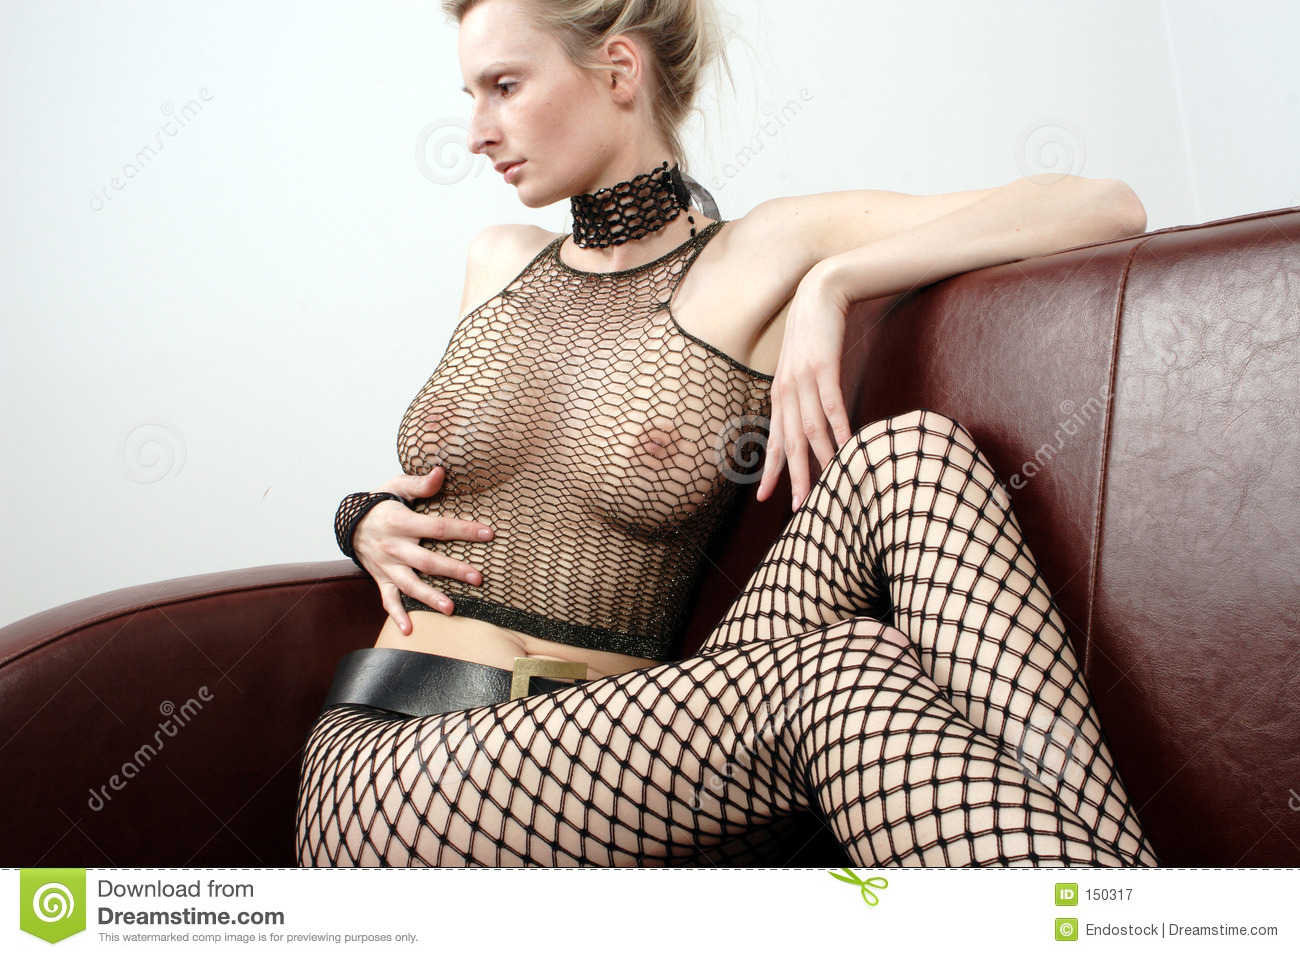 Attractive woman on leather sofa